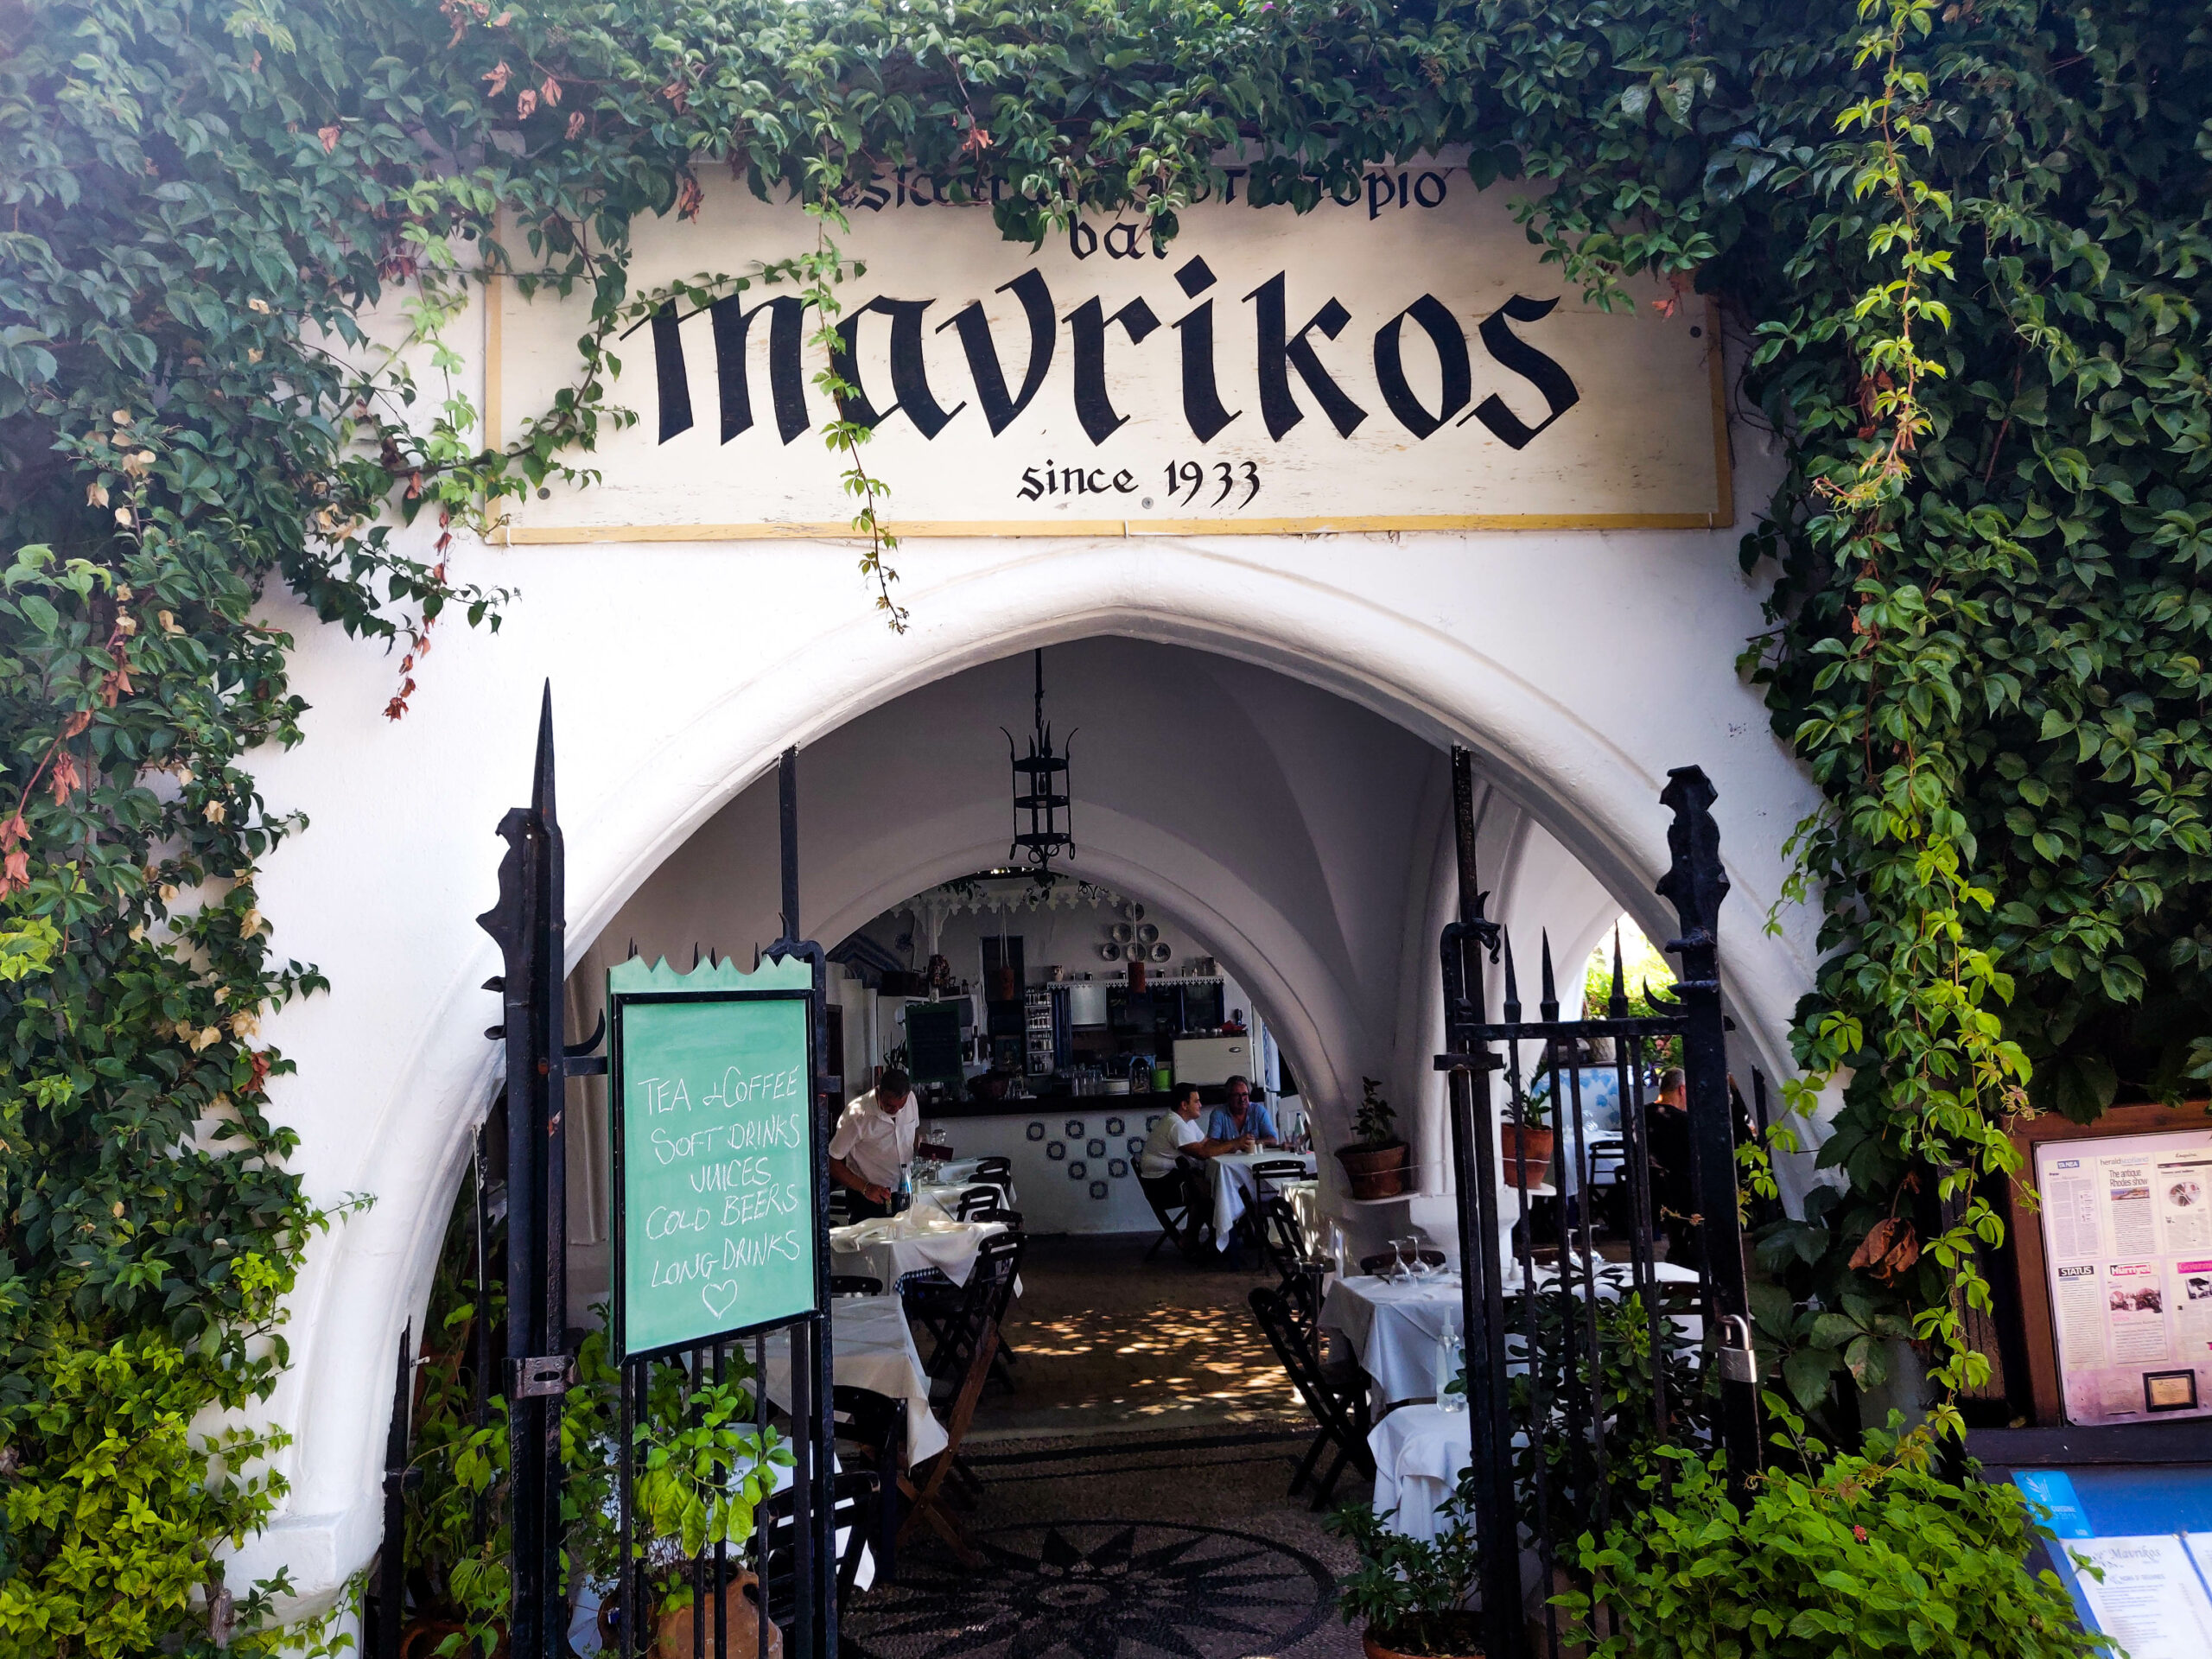 Restaurant Mavrikos in Lindos: Rhodes' Most Renowned Favourite of Hollywood Stars